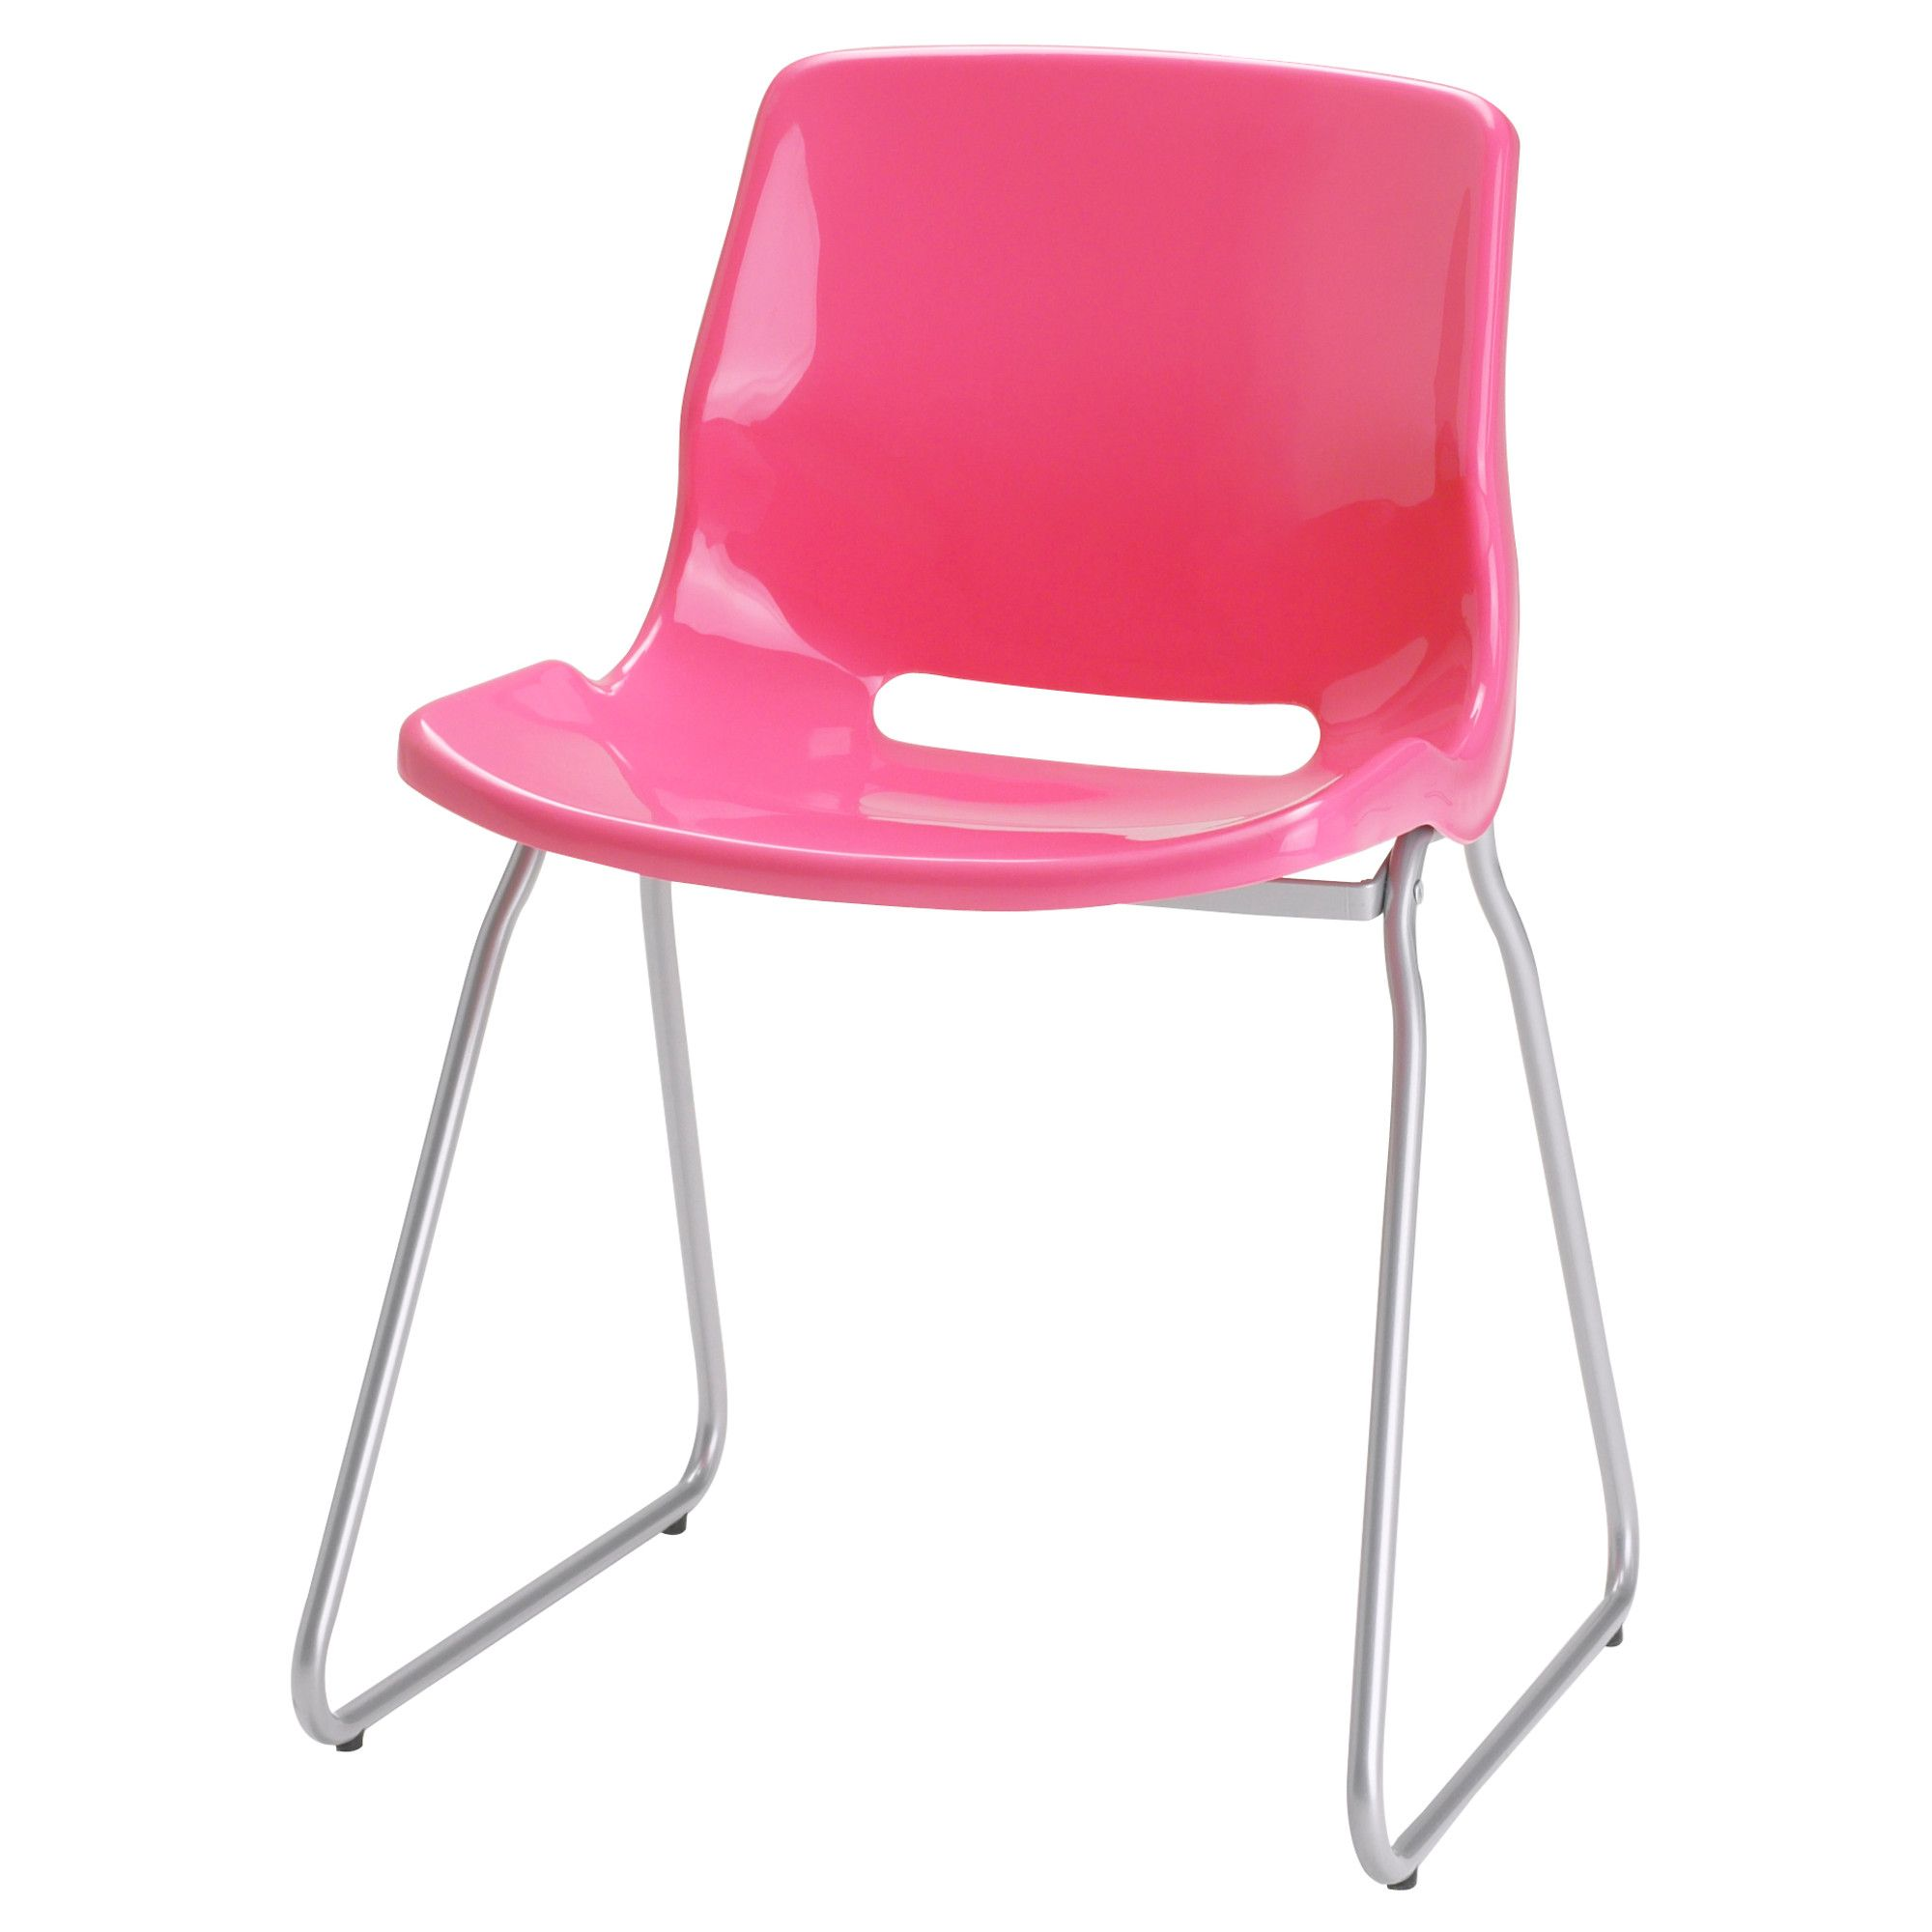 ikea pink desk chair comfy oversized snille visitor office pinterest